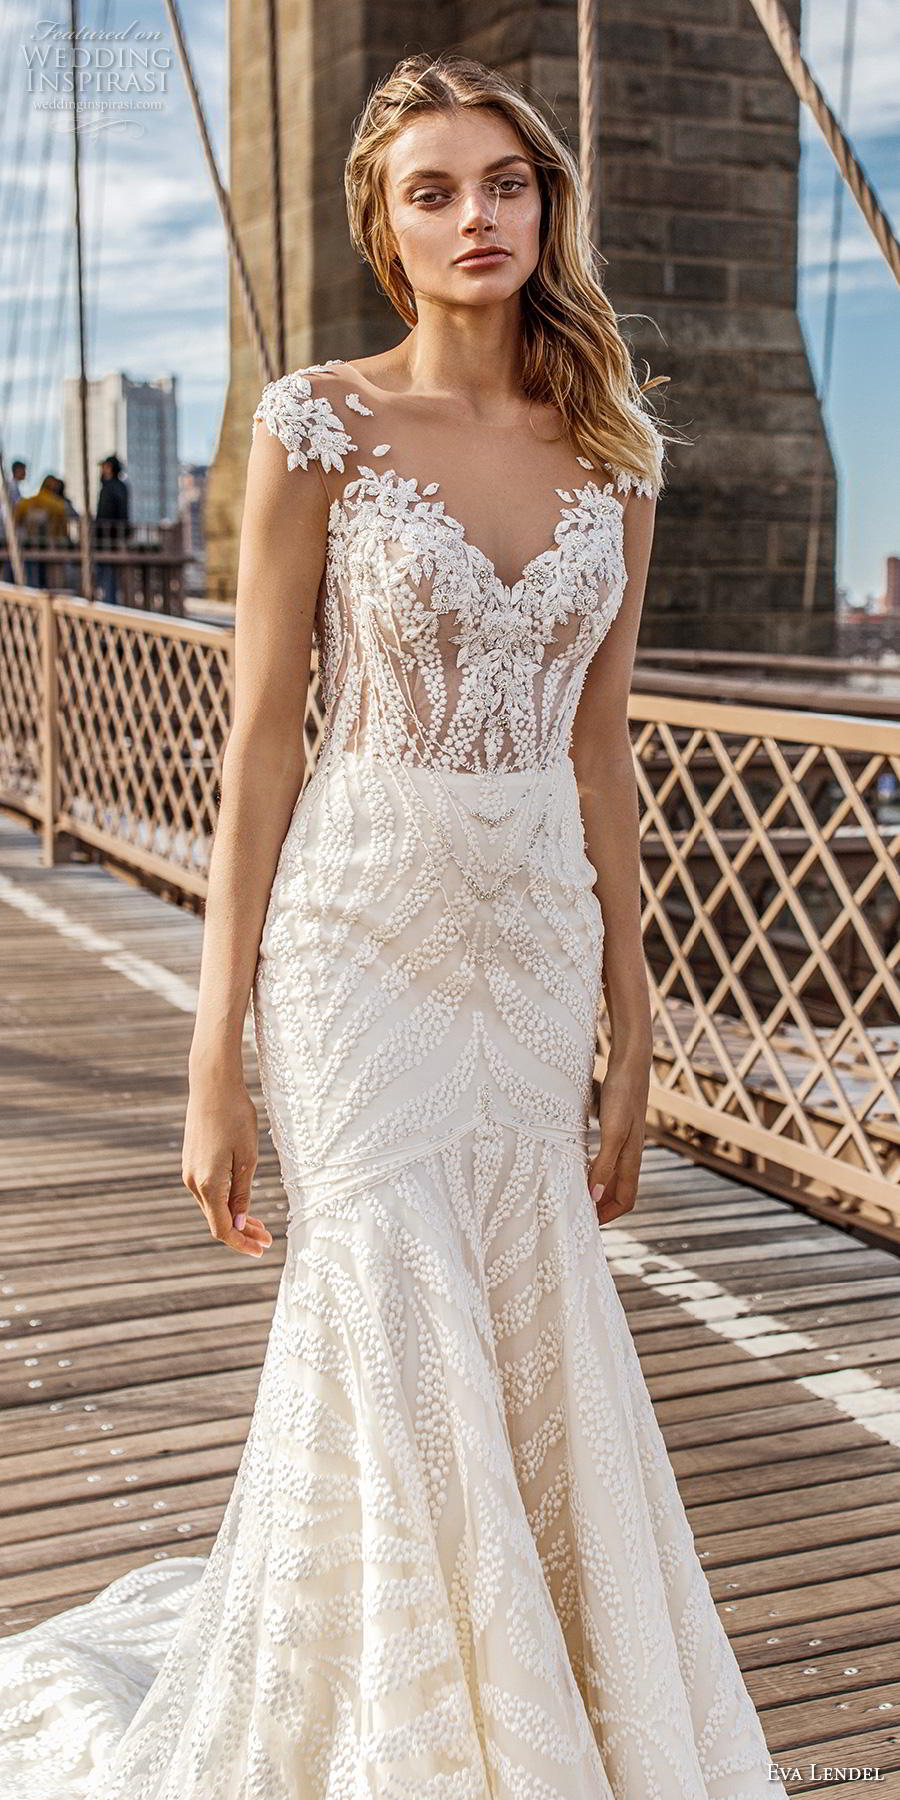 eva lendel 2019 bridal cap sleeves illusion bateau v neck full embellishment elegant trumpet wedding dress keyhole back chapel train (6) lv